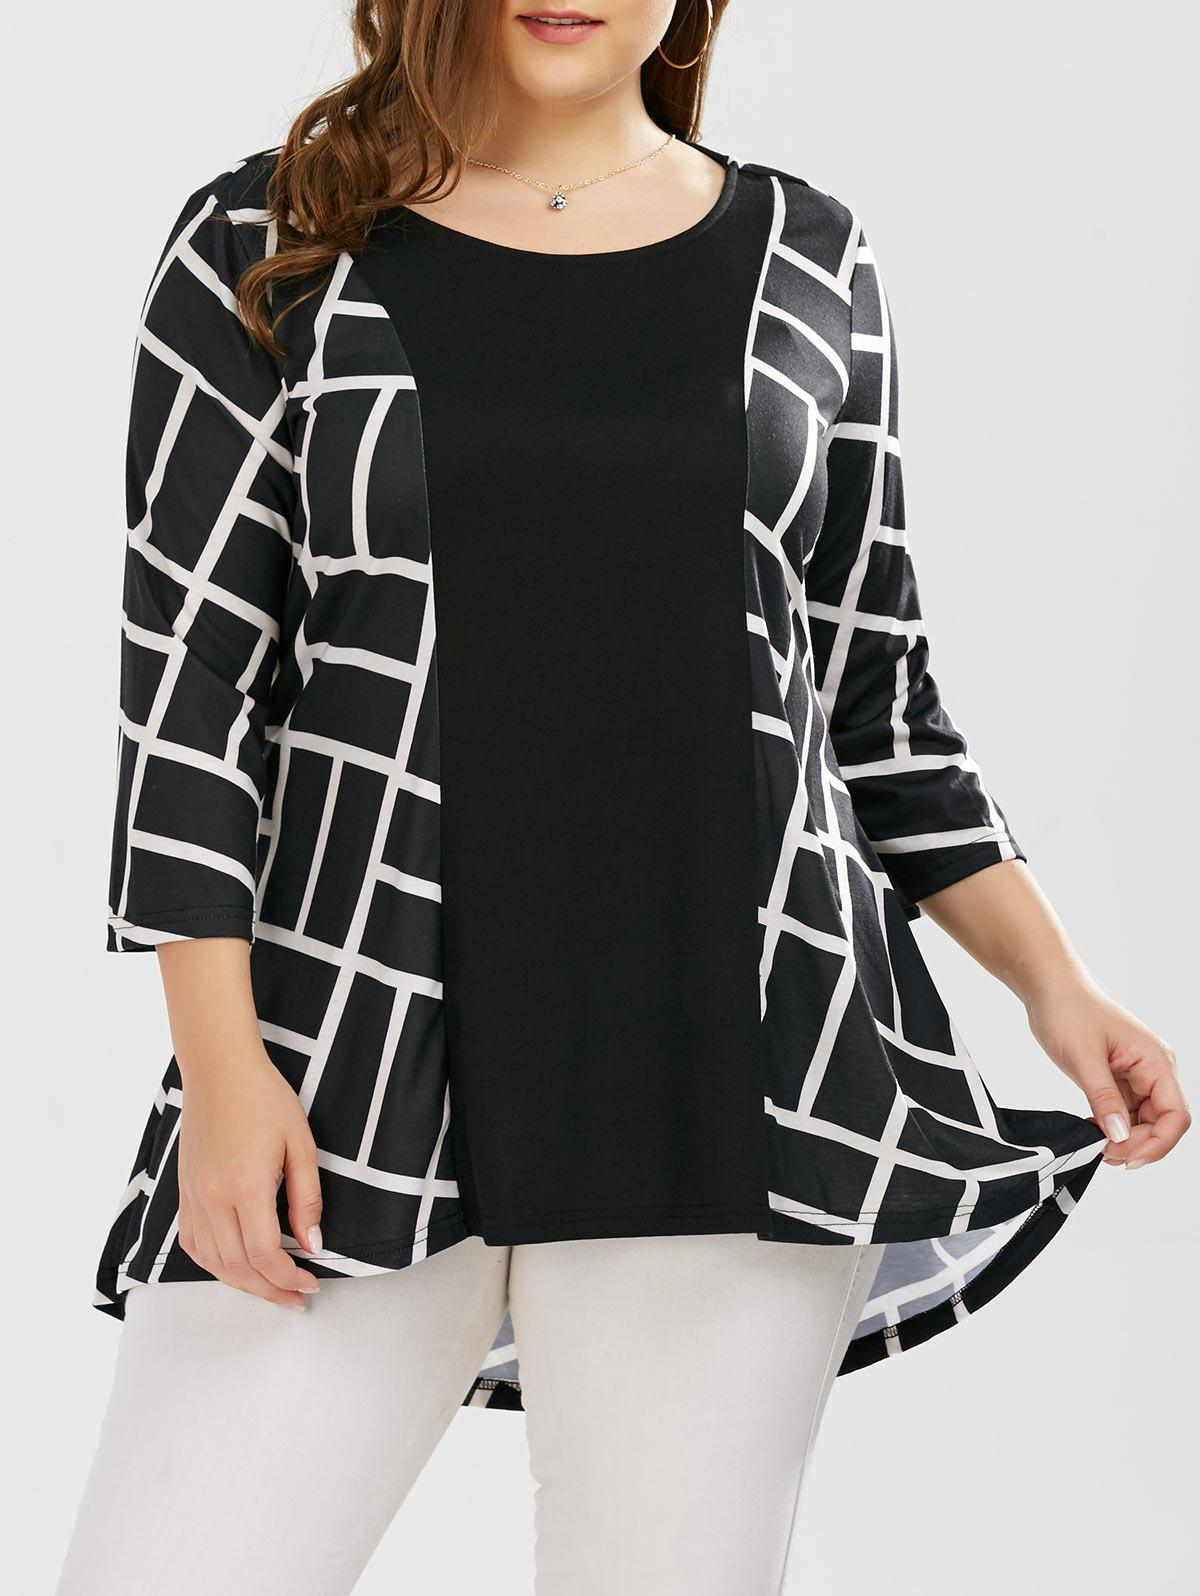 Plus Size Geometric Smock BlouseWOMEN<br><br>Size: 2XL; Color: WHITE AND BLACK; Material: Polyester,Spandex; Shirt Length: Long; Sleeve Length: Three Quarter; Collar: Scoop Neck; Style: Casual; Season: Fall,Spring,Summer; Pattern Type: Geometric; Weight: 0.3700kg; Package Contents: 1 x Blouse;